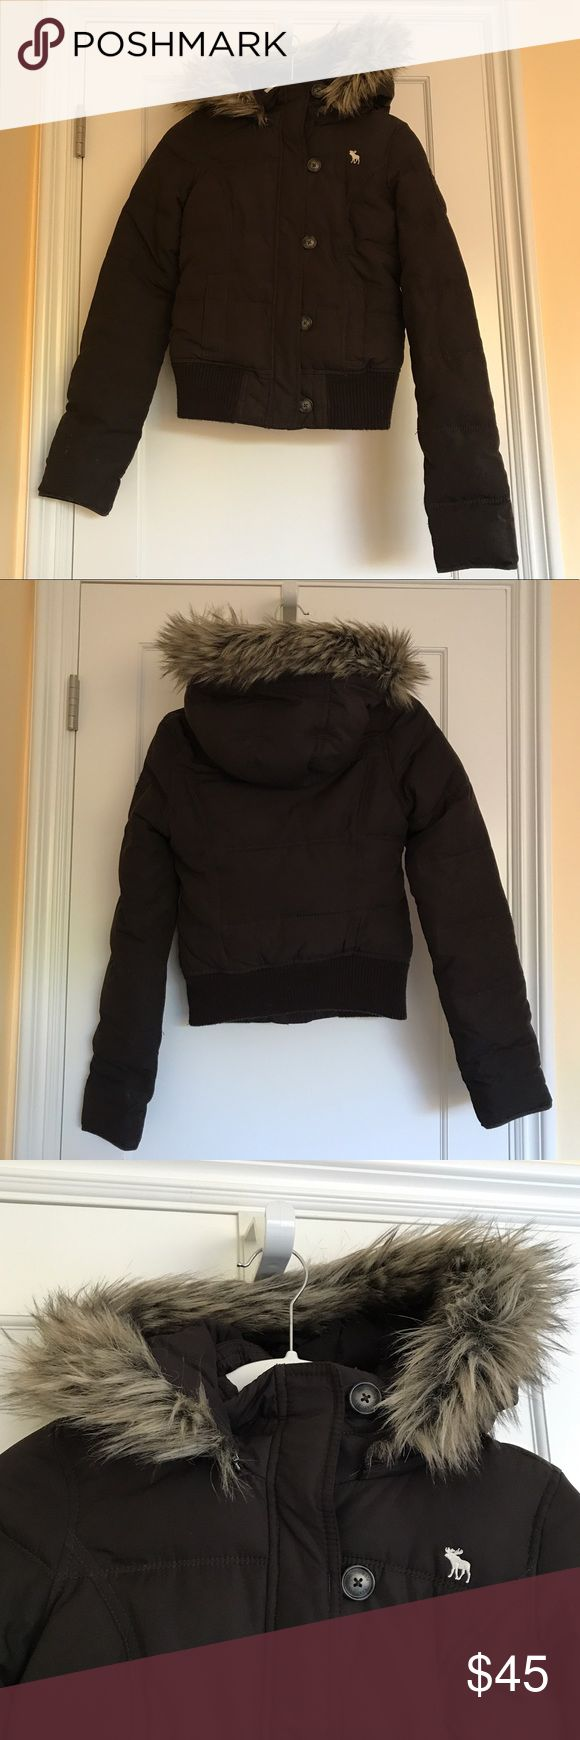 FLASH SALE🚨 Abercrombie Brown Puffer w Fur Hood ONLY ON SALE FOR A LIMITED TIME SO GET IT NOW!!!! This Abercrombie kids XL brown puffer with a fur hood will be a perfect addition to your closet. IT WAS BARELY WORN (I live in California so I didn't have much use for it) AND IS IN AMAZING CONDITION. It zips up in the front and has brown buttons on the sides that also connect the jacket. The fur hood is EASILY DETACHABLE with a zipper! It will also fit a woman who is a size XS (see model)…